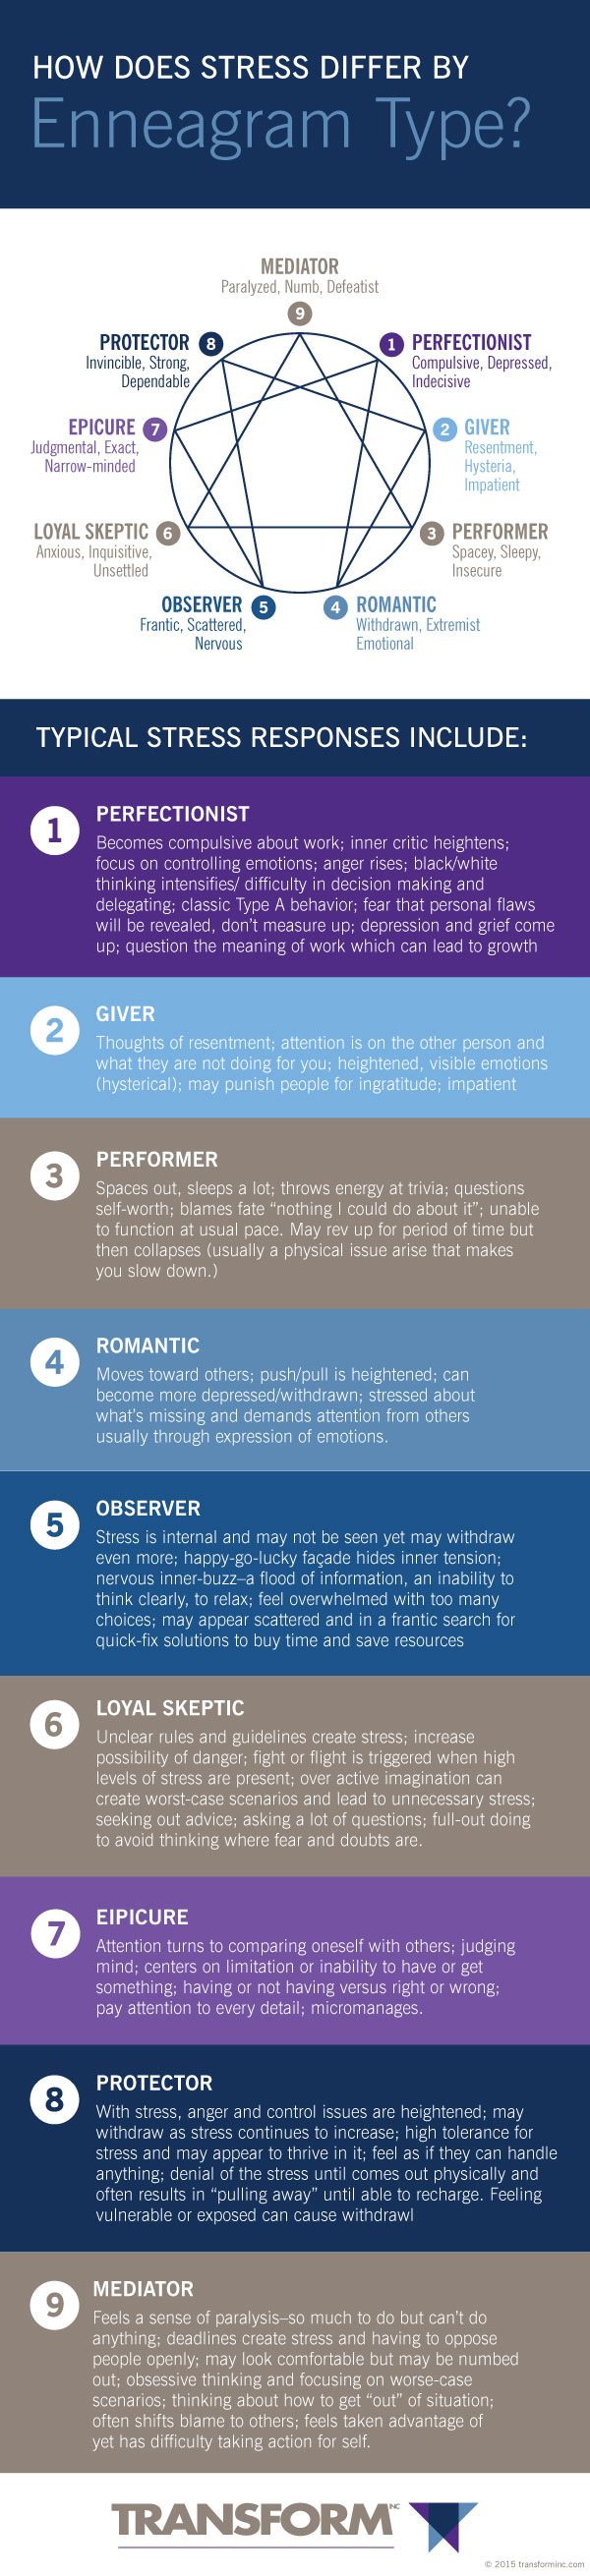 Stress-and-your-Enneagram-Type-01